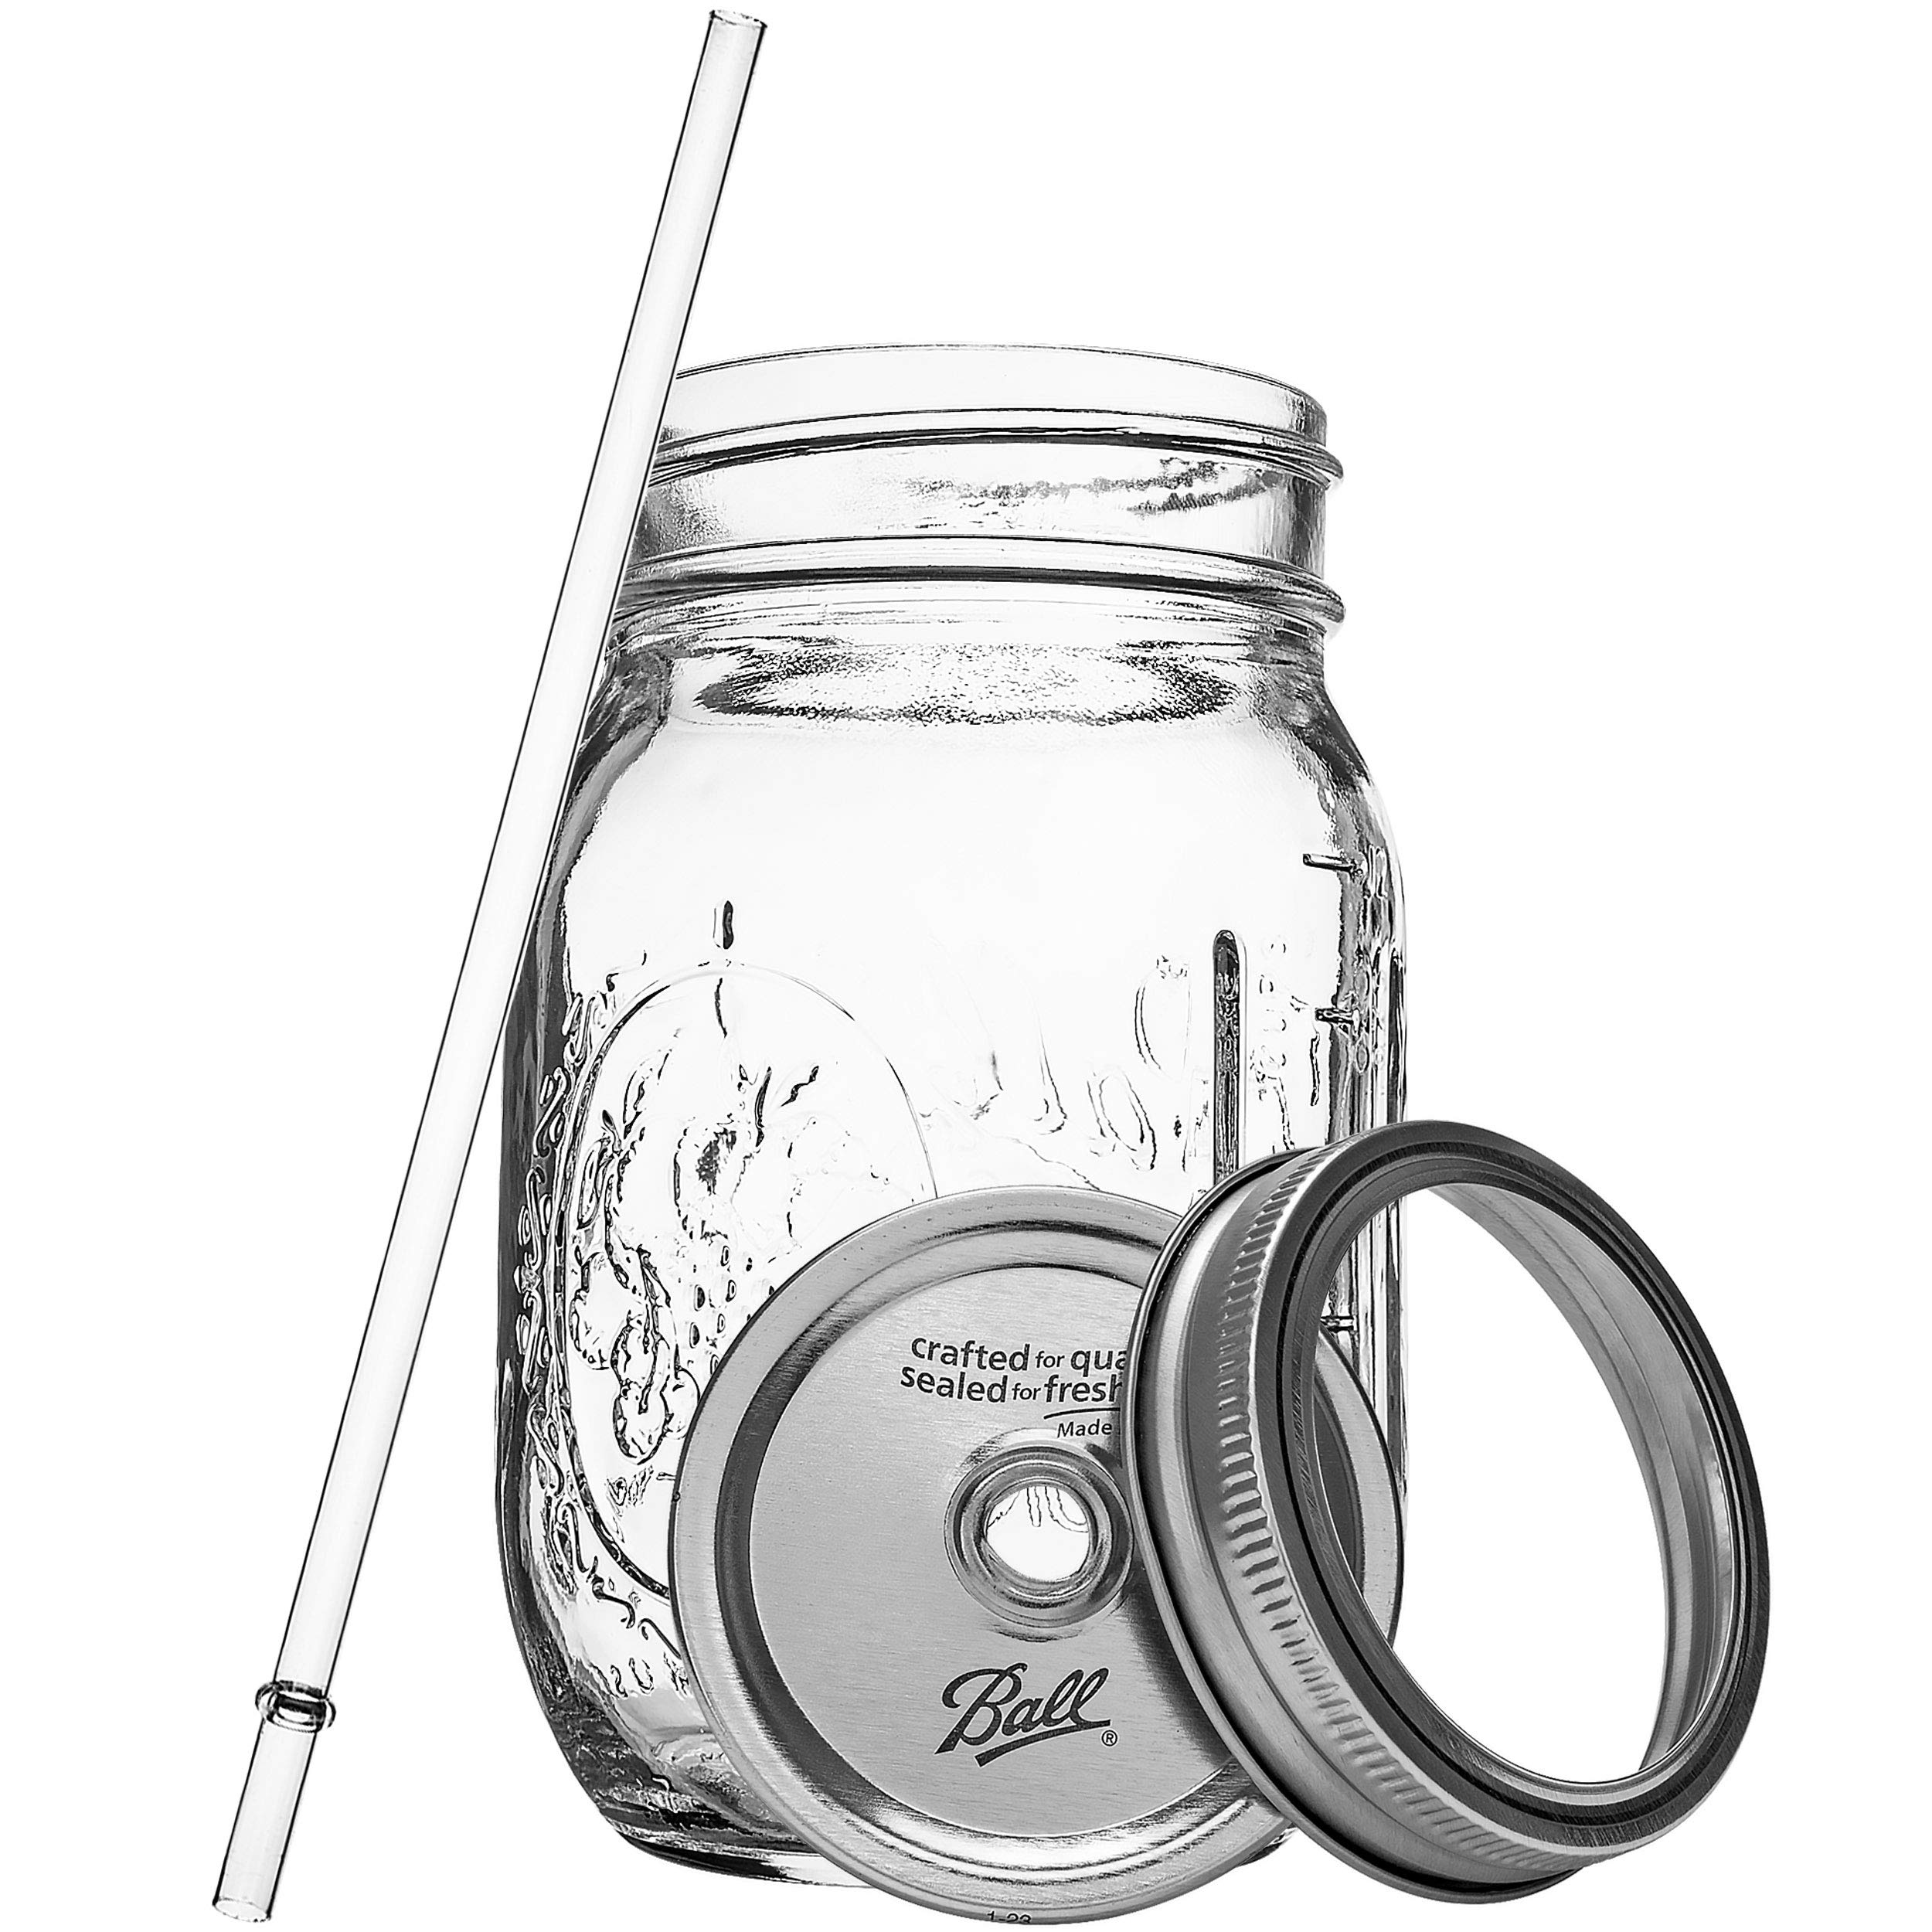 Ball RNWG-SIP-16OZ-2PK Sipper Set a 16oz Mason Jar + Sippin' Lid + Acrylic Straw Reusable Novelty Cocktail Glasses Shabby Chic, 2 Pack Clear by Ball (Image #3)